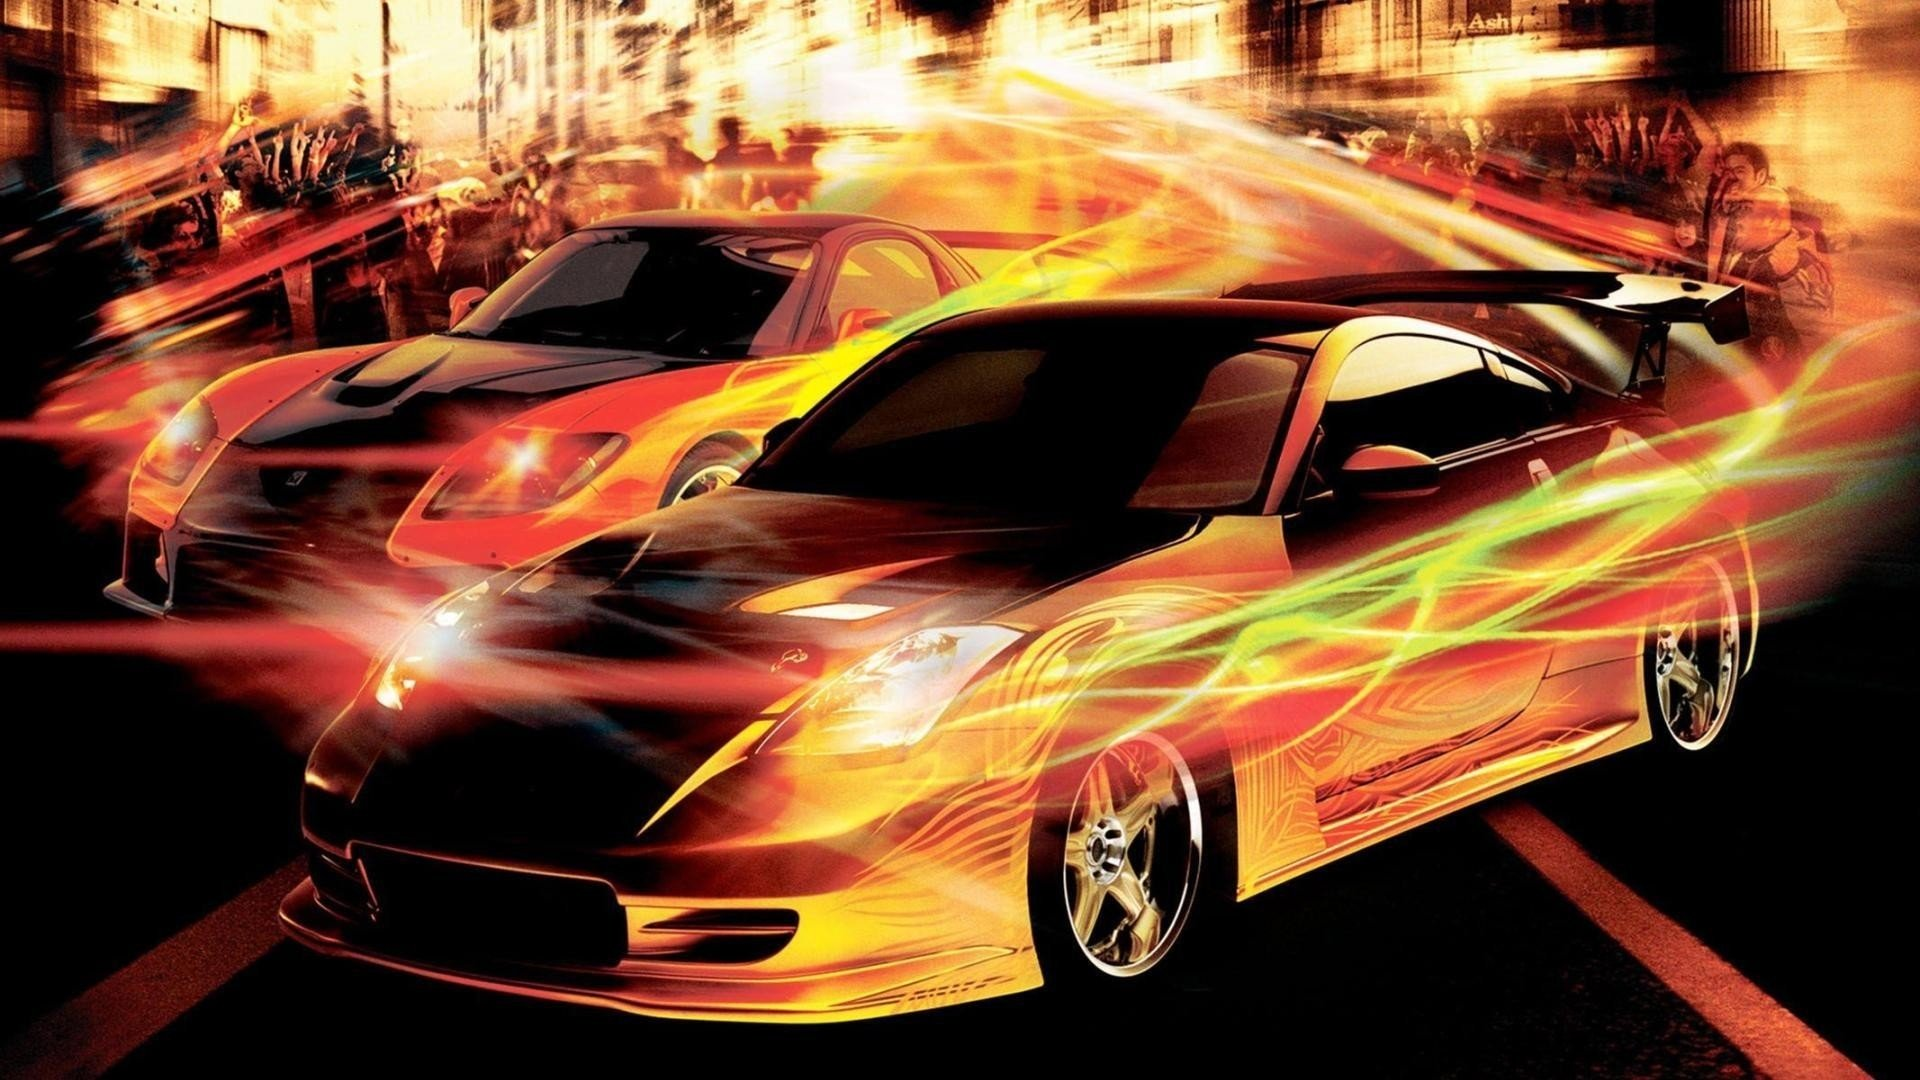 The Fast And The Furious Tokyo Drift Hd Wallpaper Background